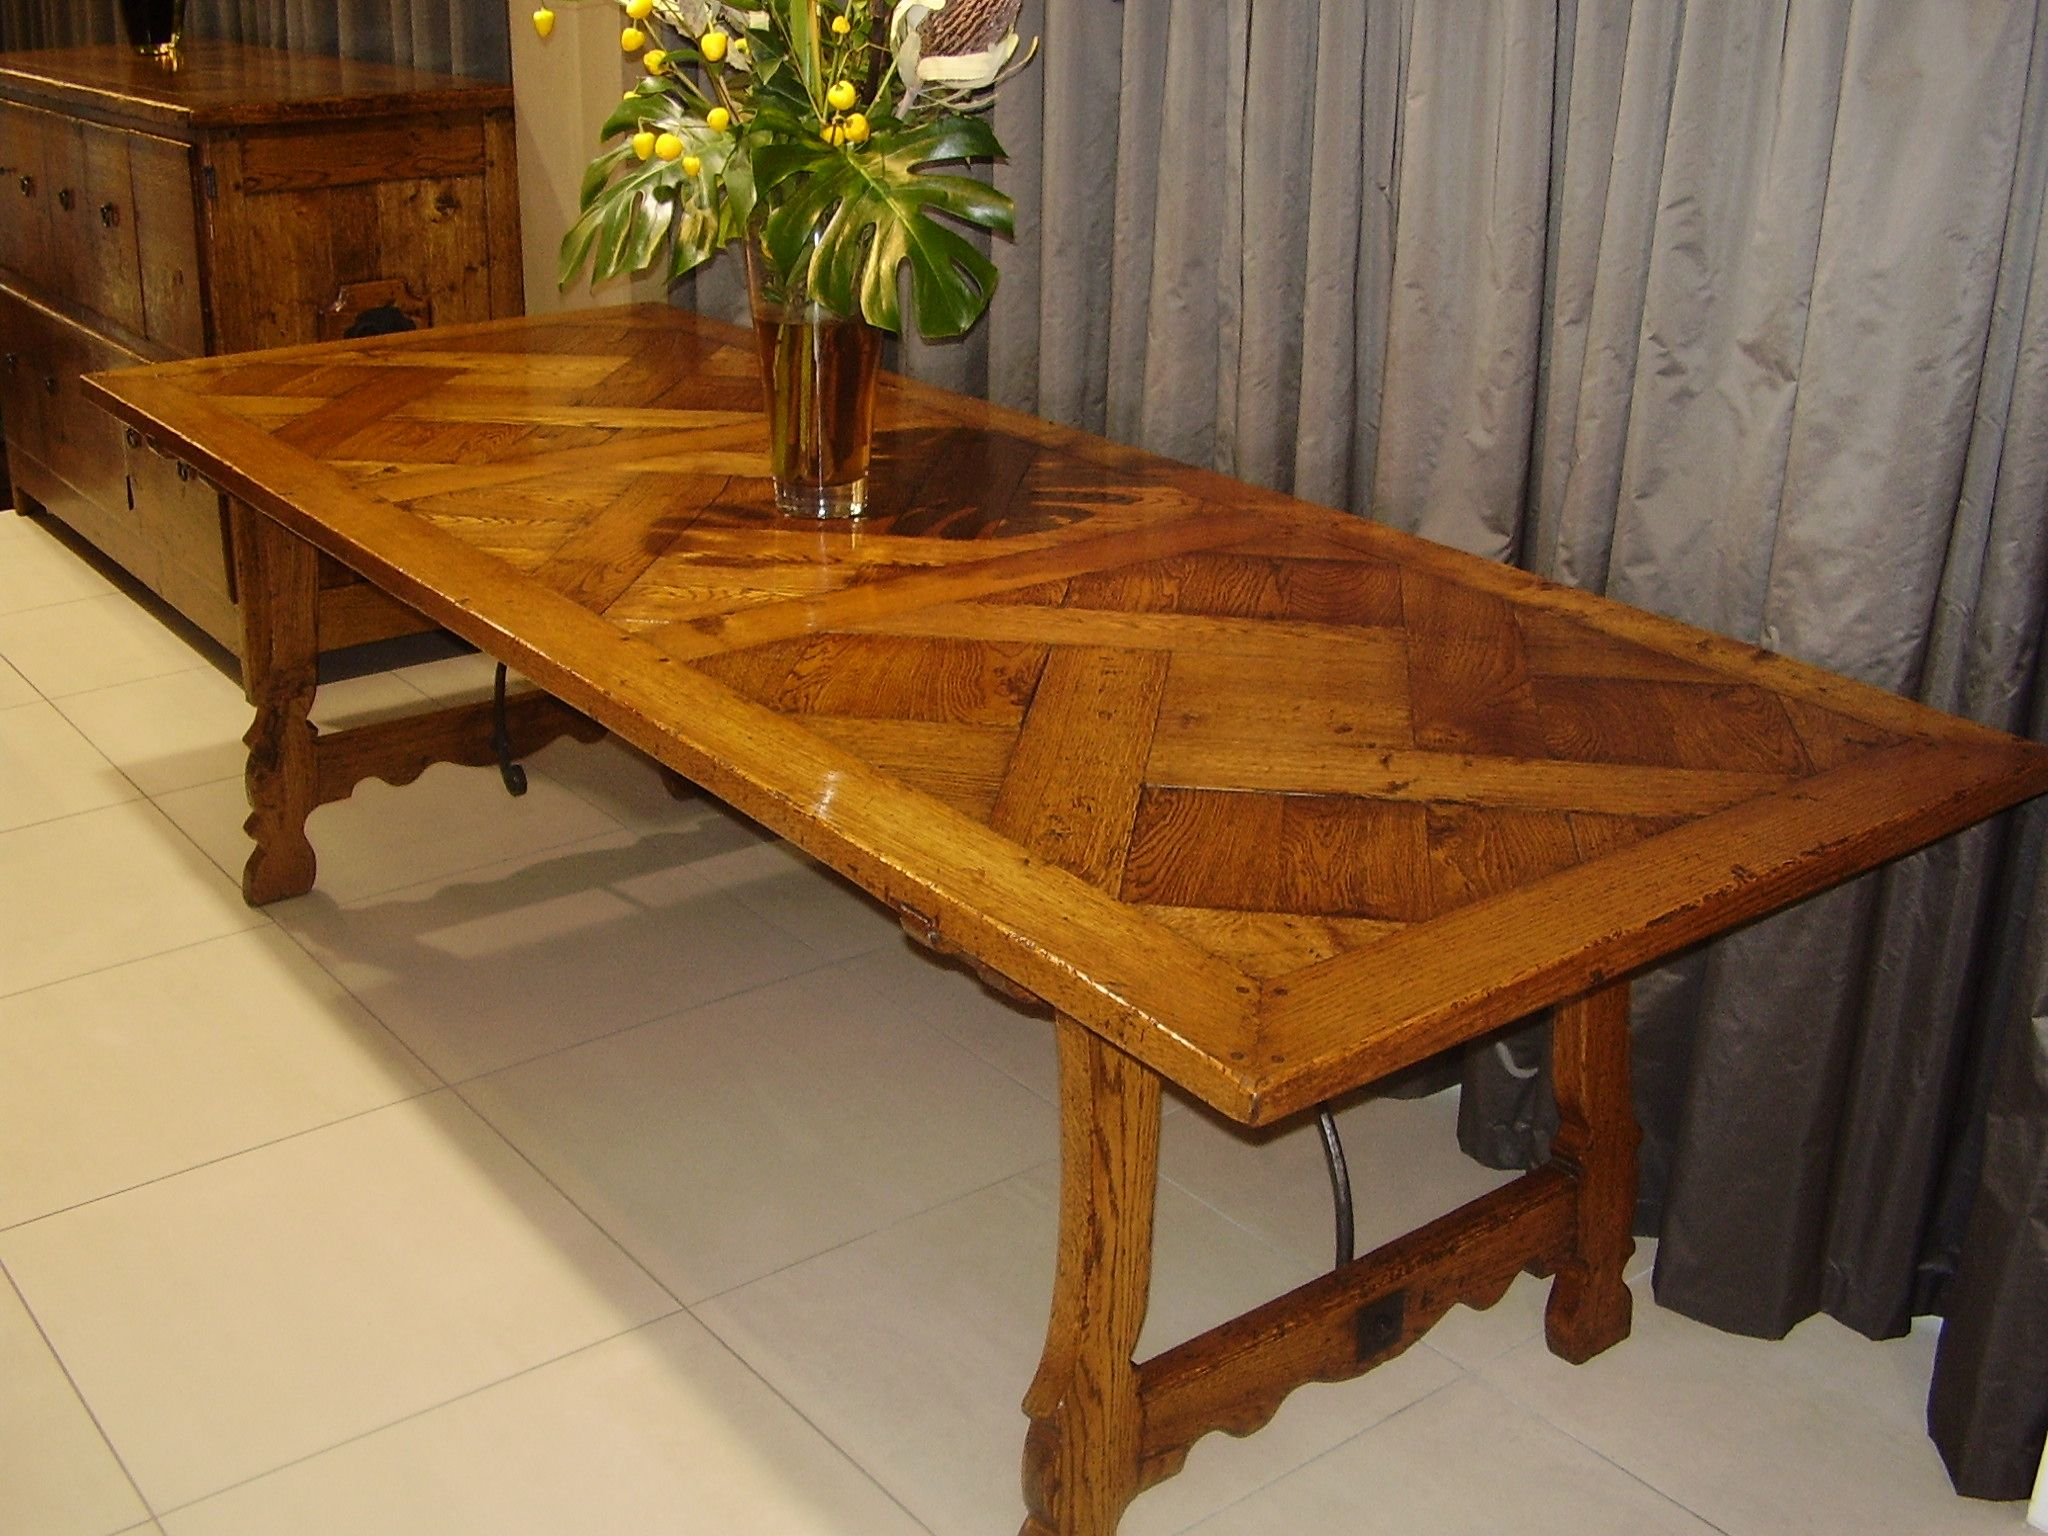 Spanish Parquetry Table With Wrought Iron Base French Oak